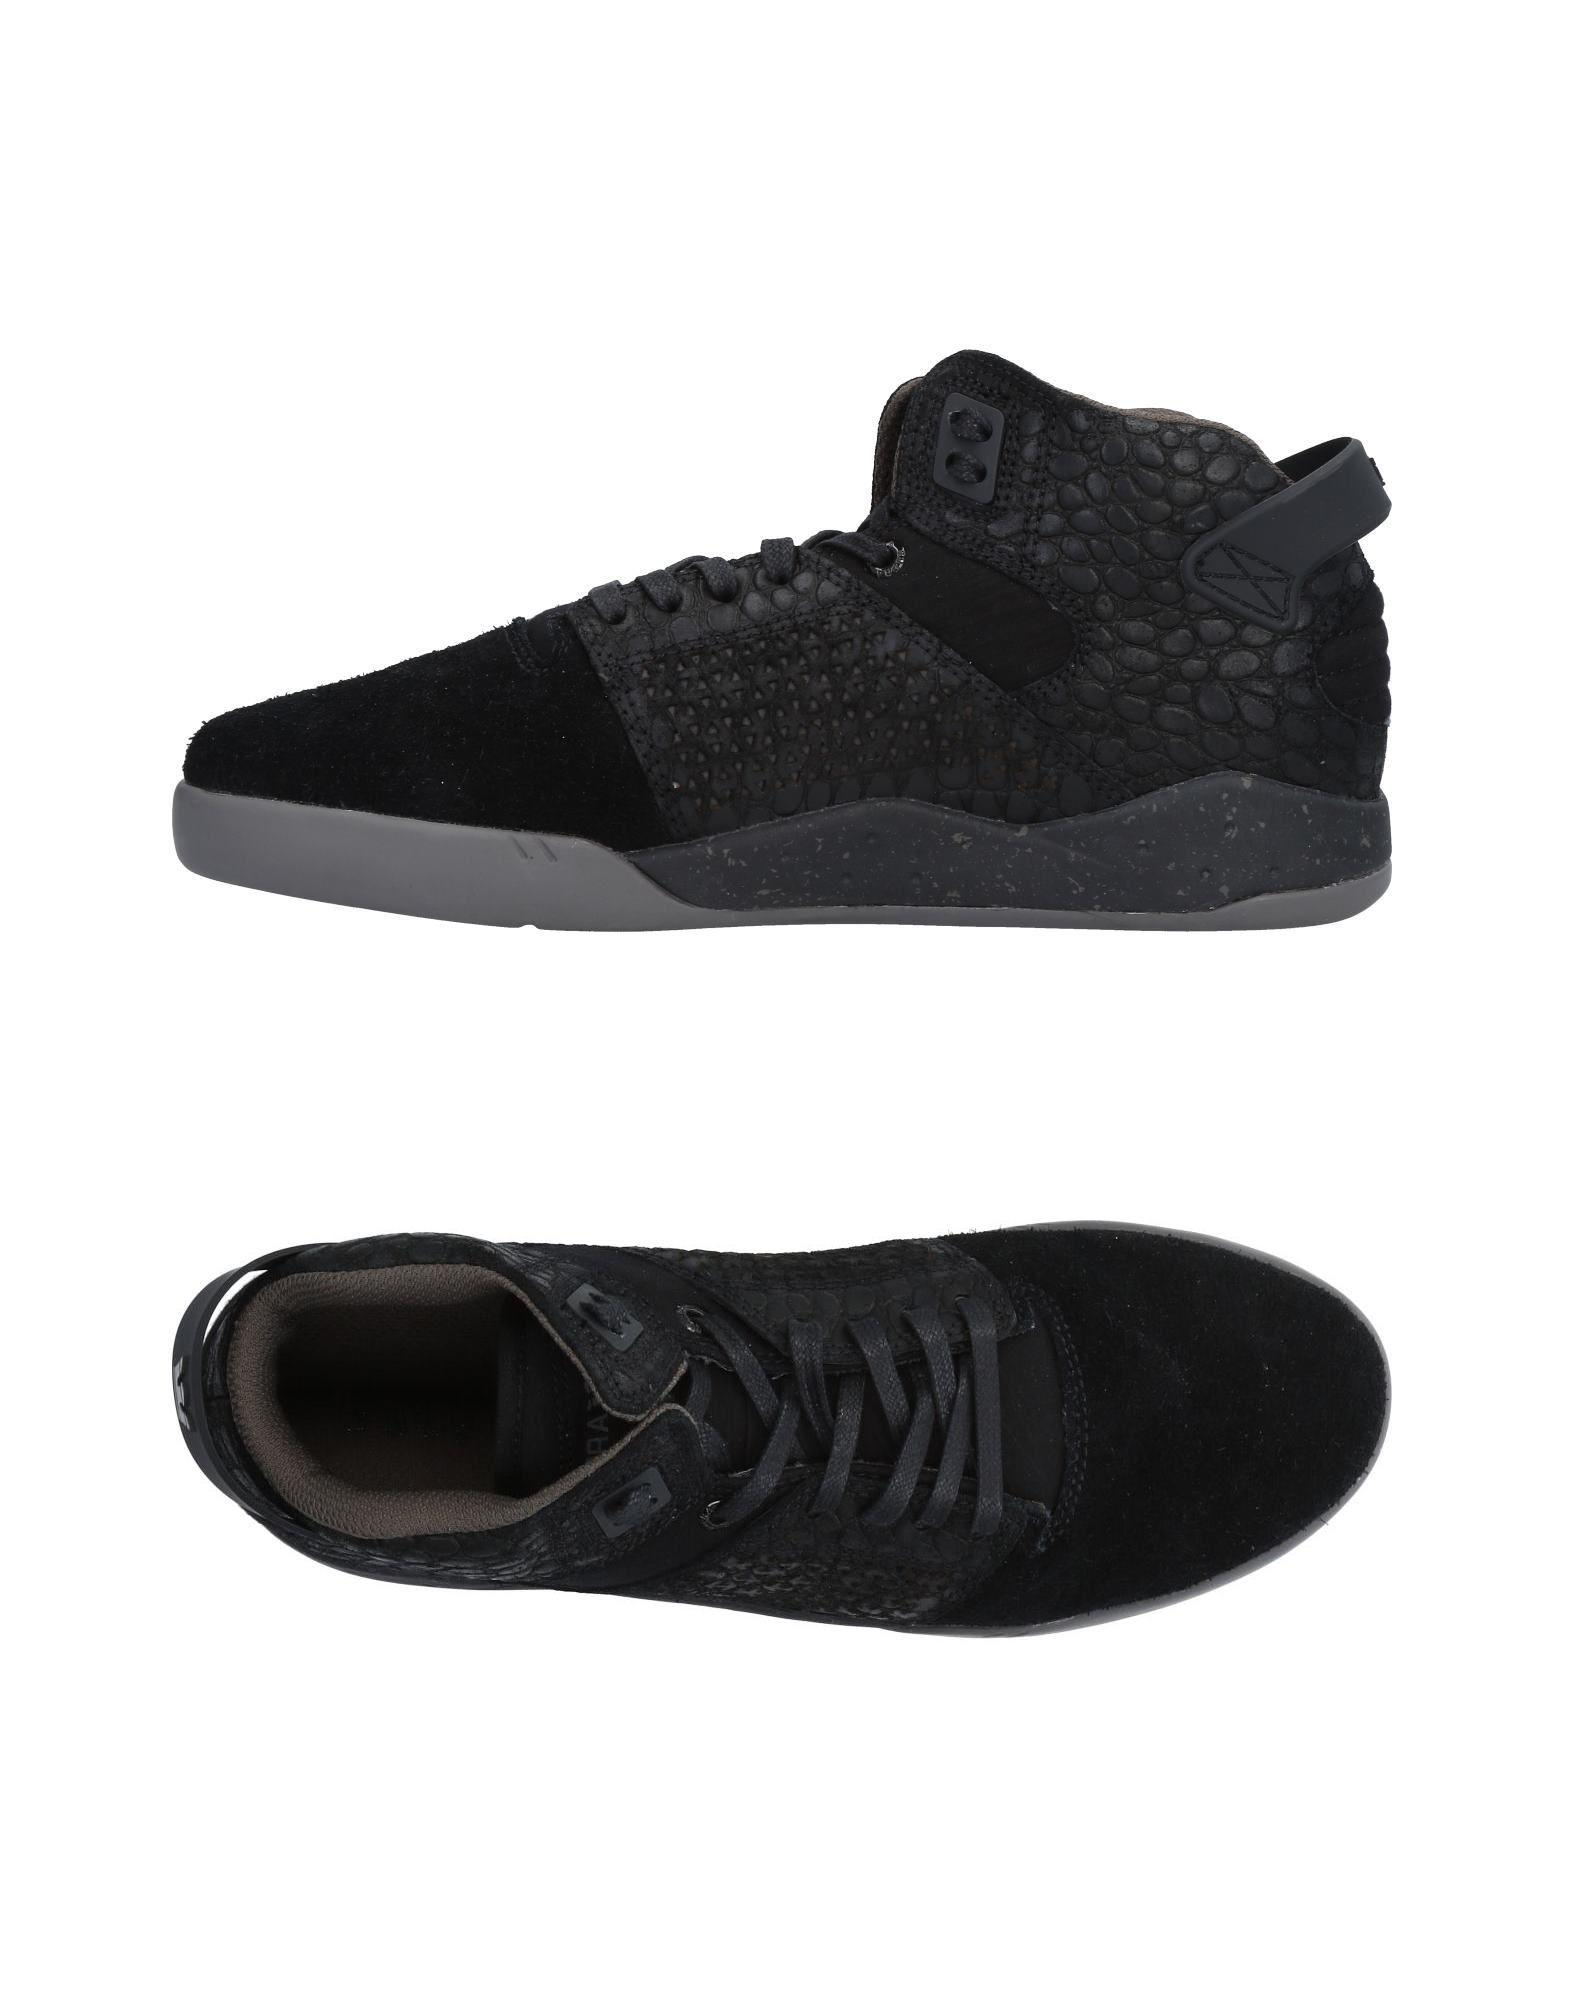 d057a6a683a2 Supra High-tops   Sneakers in Black for Men - Lyst